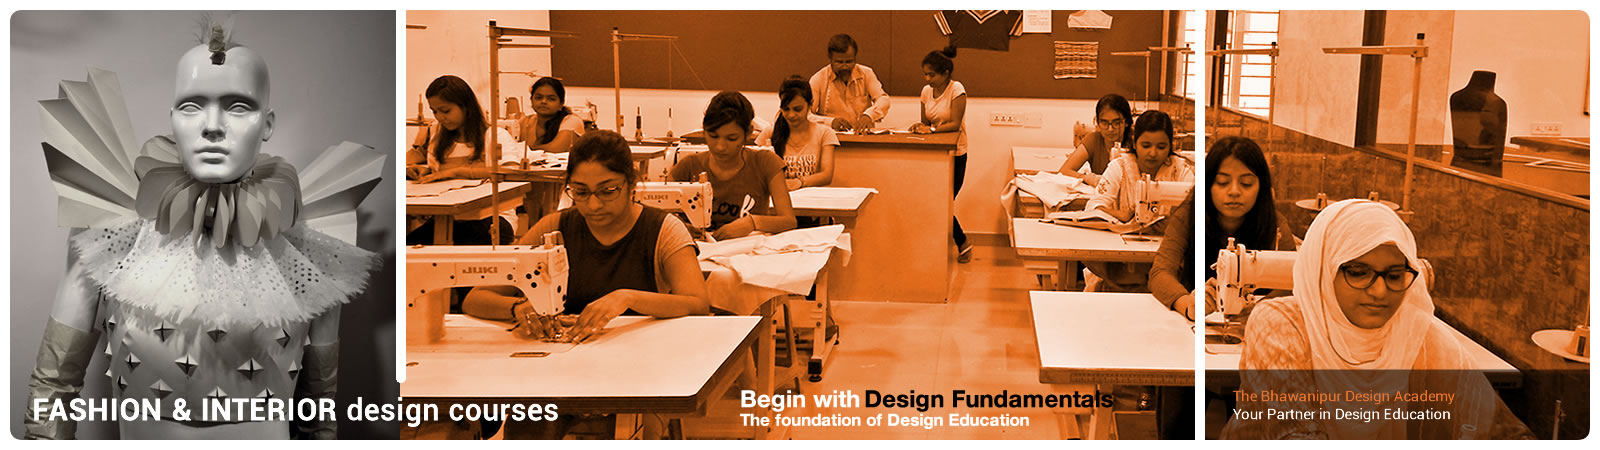 The Bhawanipur Design Academy Bda Fashion Design Interior Design Fashion And Interior Design Institute Fashion Design Courses Interior Design Courses Learn Fashion Design Learn Interior Design Kolkata India